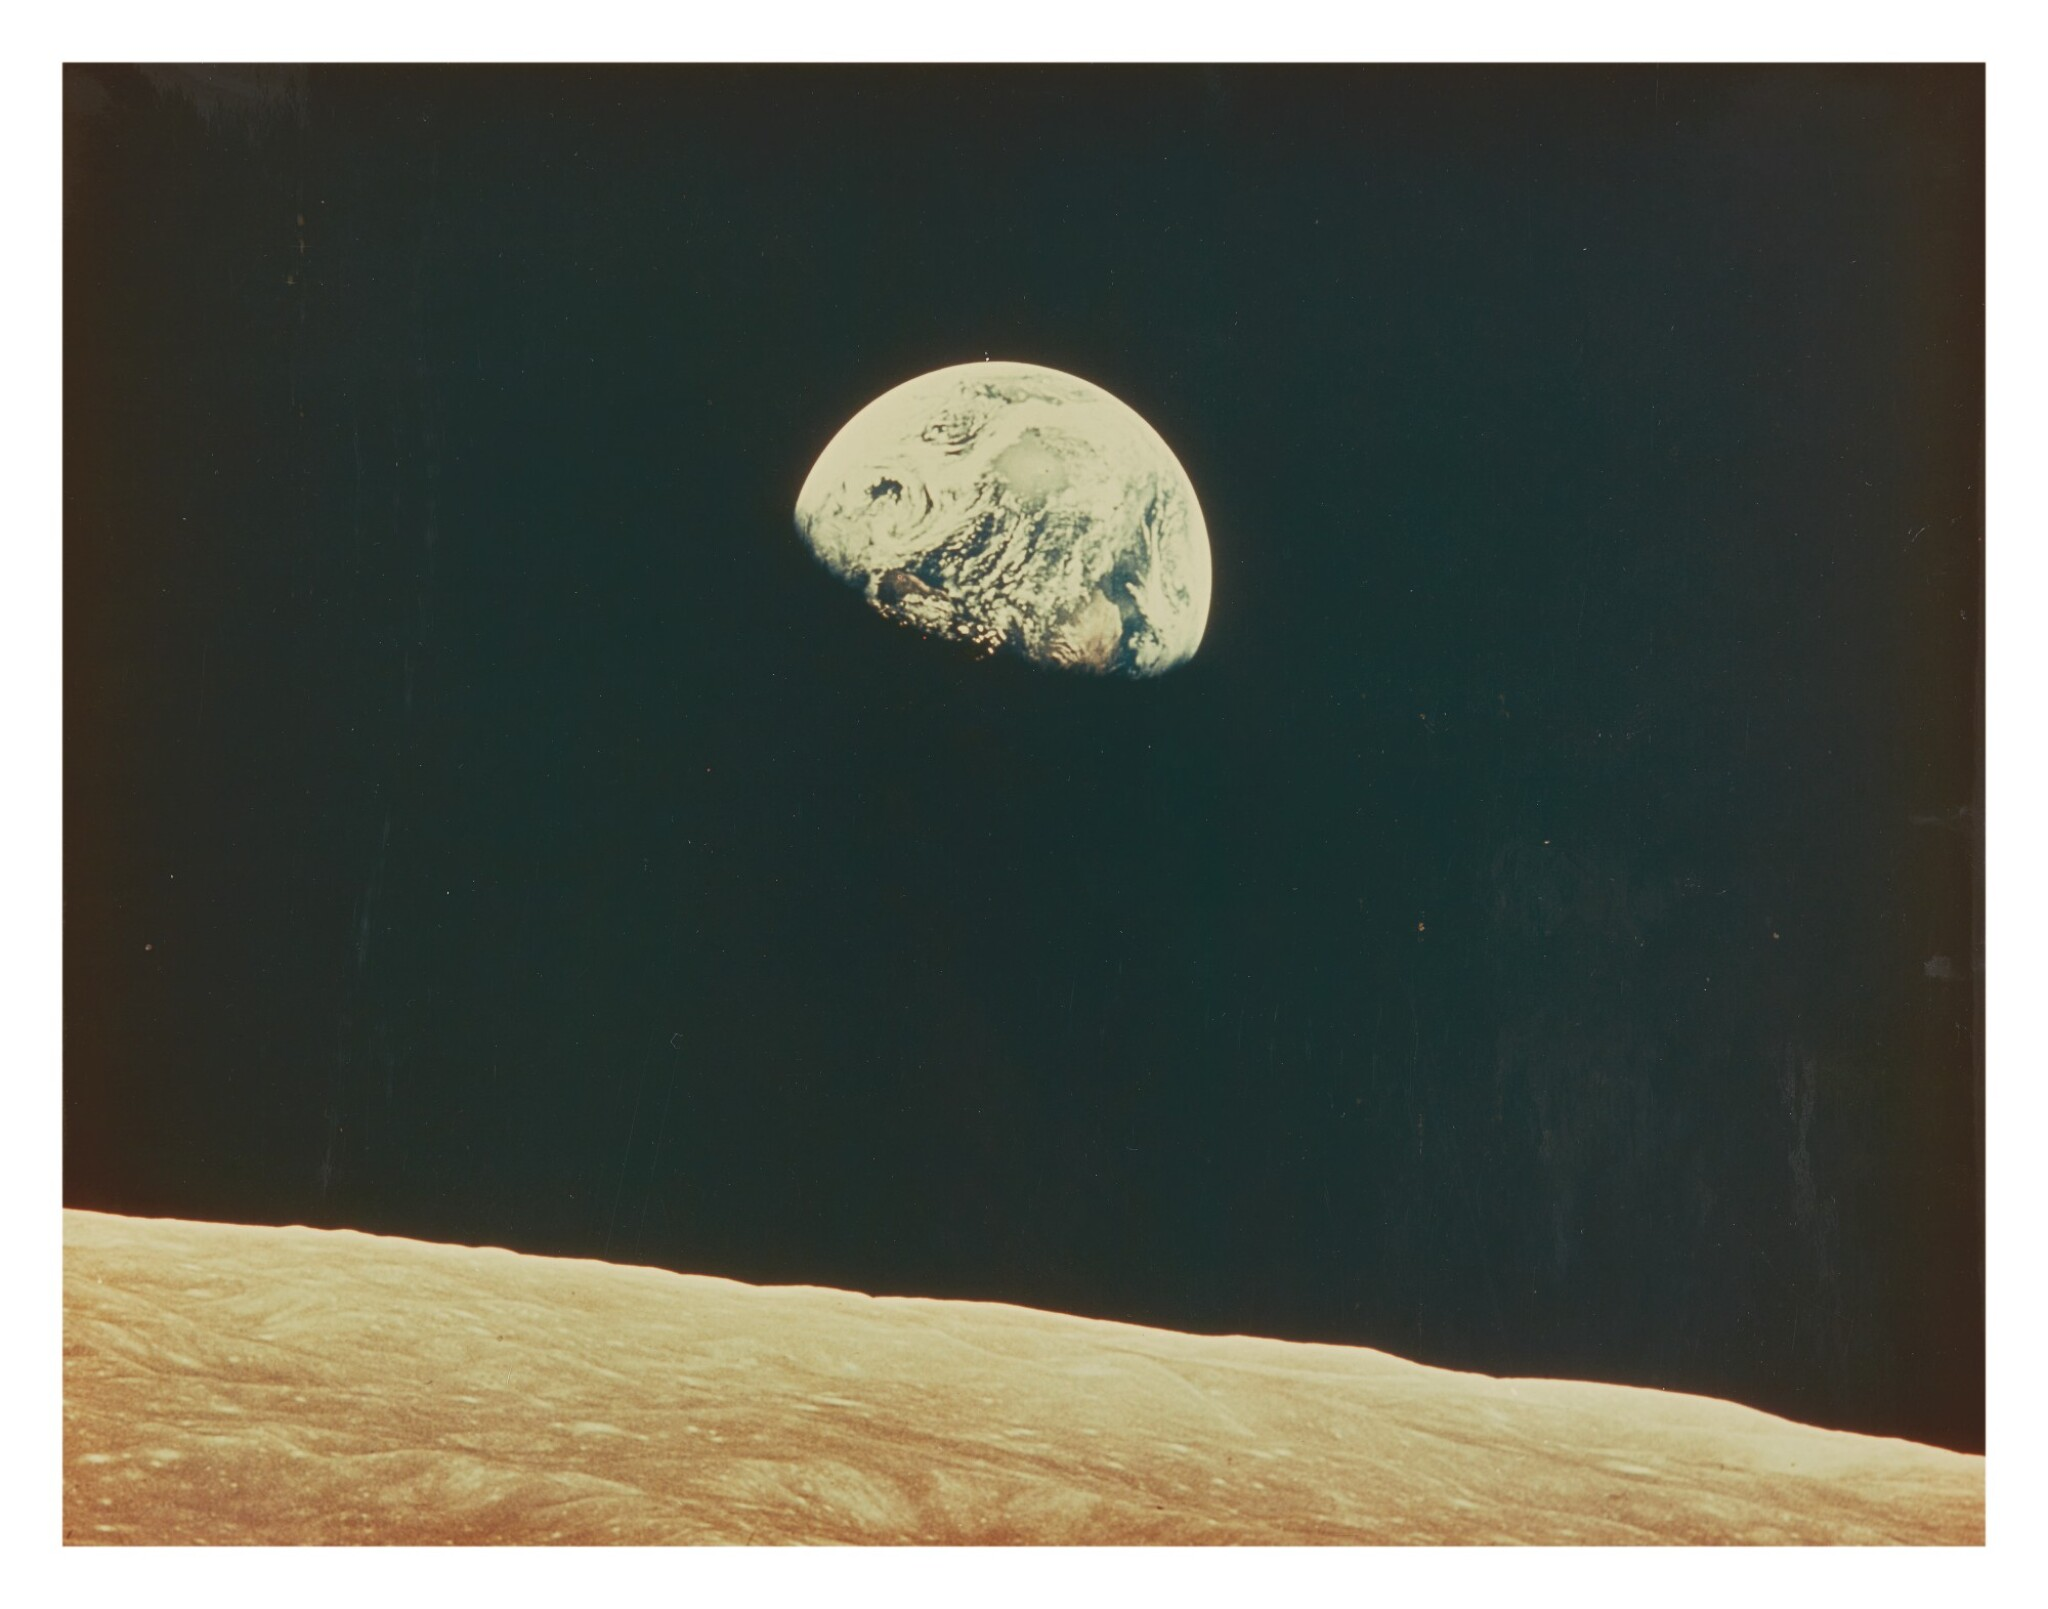 [APOLLO 8] EARTHRISE, AS PHOTOGRAPHED FROM THE APOLLO 8 CM. VINTAGE LARGE FORMAT PHOTOGRAPH, 24 DECEMBER 1968.